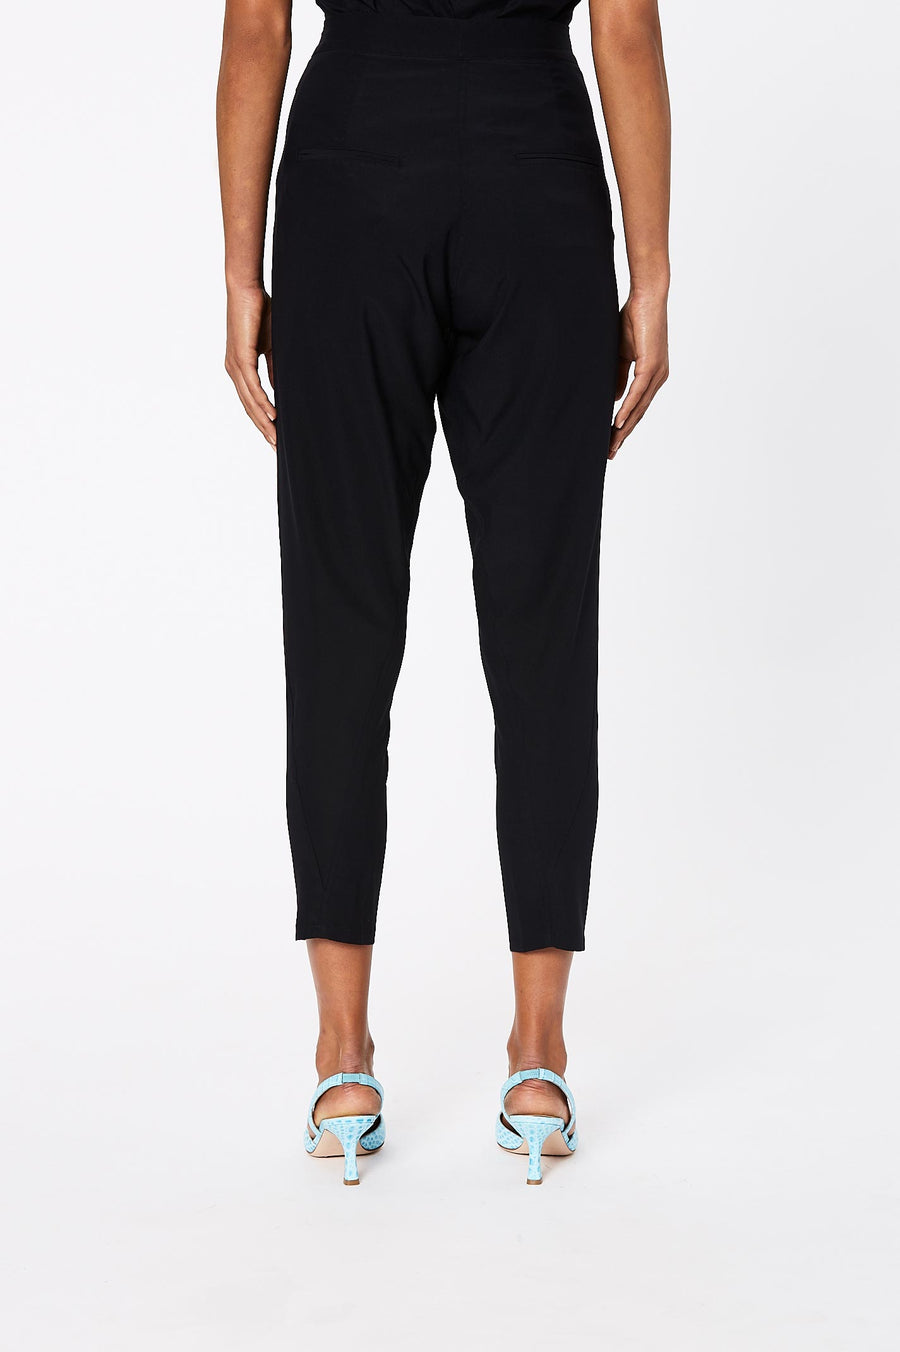 Silk Low Rise Button Pant Navy  - Scanlan Theodore